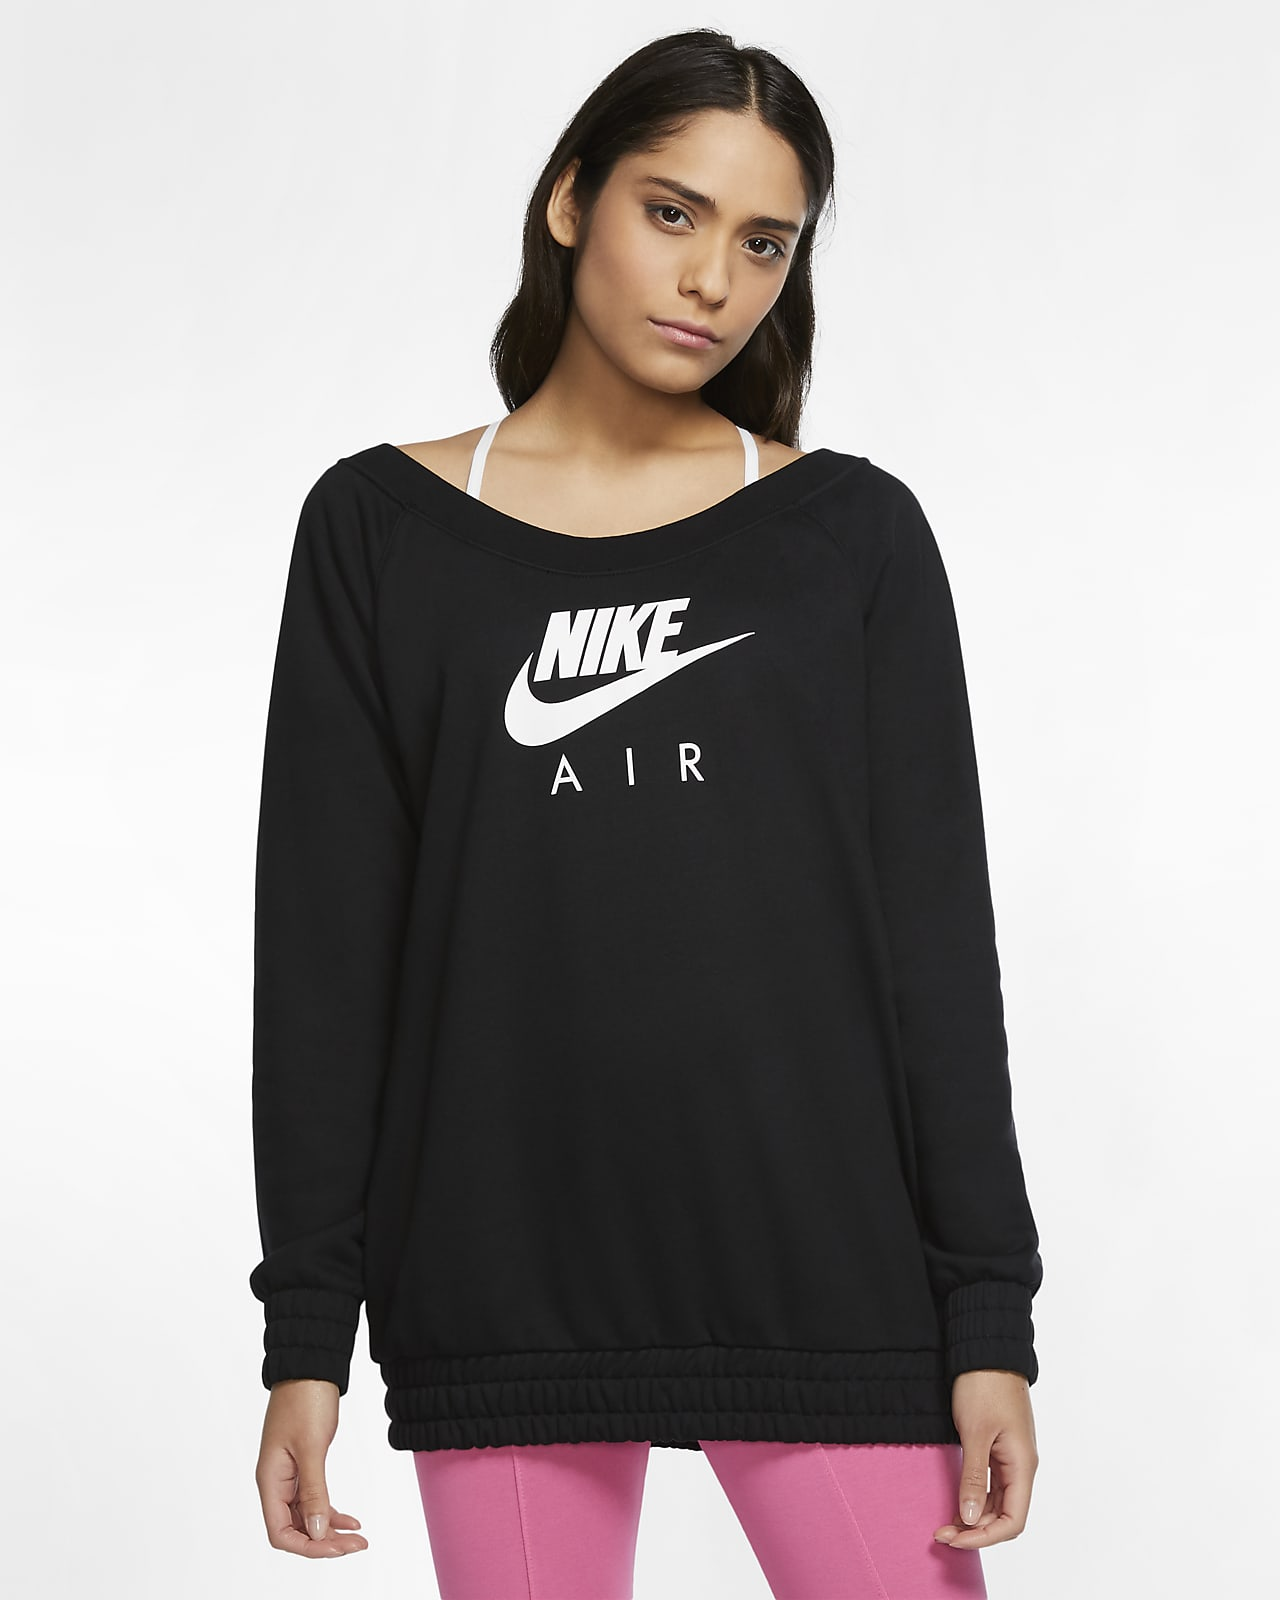 Nike Air Women's Oversized Top